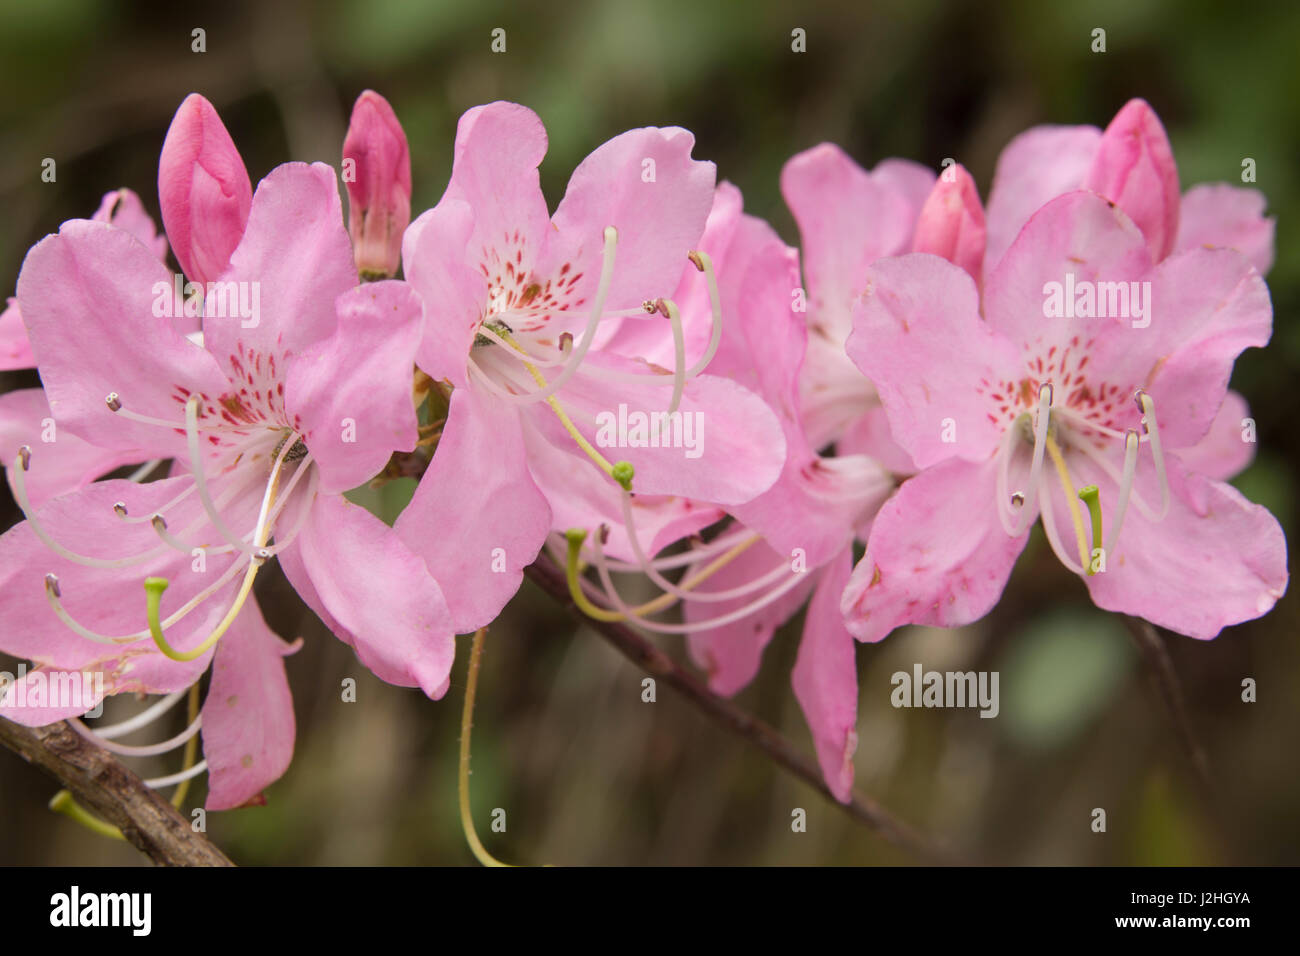 USA, North Carolina. Close-up of Catawba rhododendron flowers. Credit as: Don Grall / Jaynes Gallery / DanitaDelimont.com - Stock Image